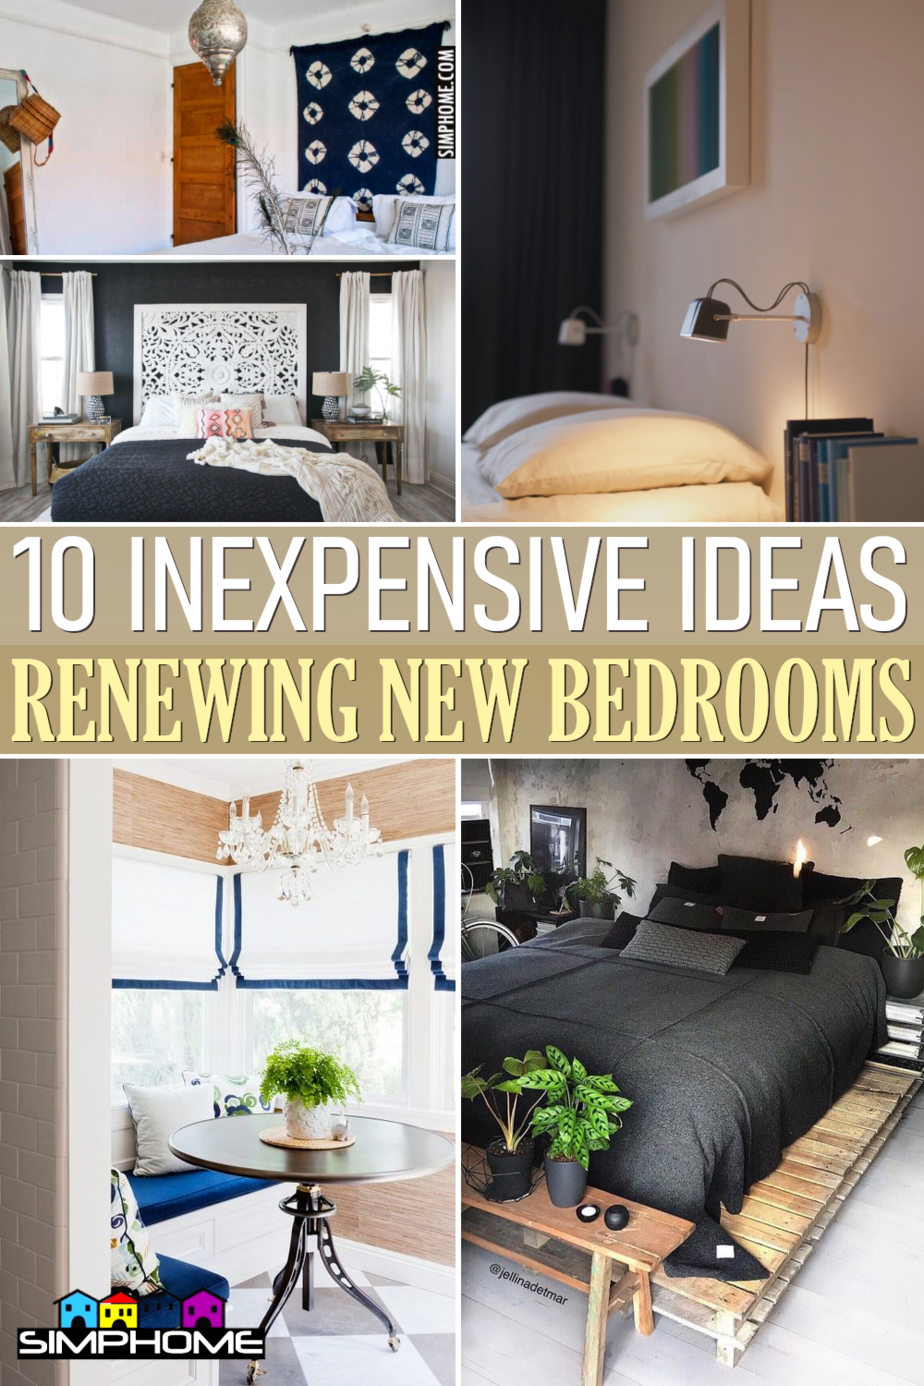 10 Inexpensive Ideas to renew bedroom by Simphome.comFeatured